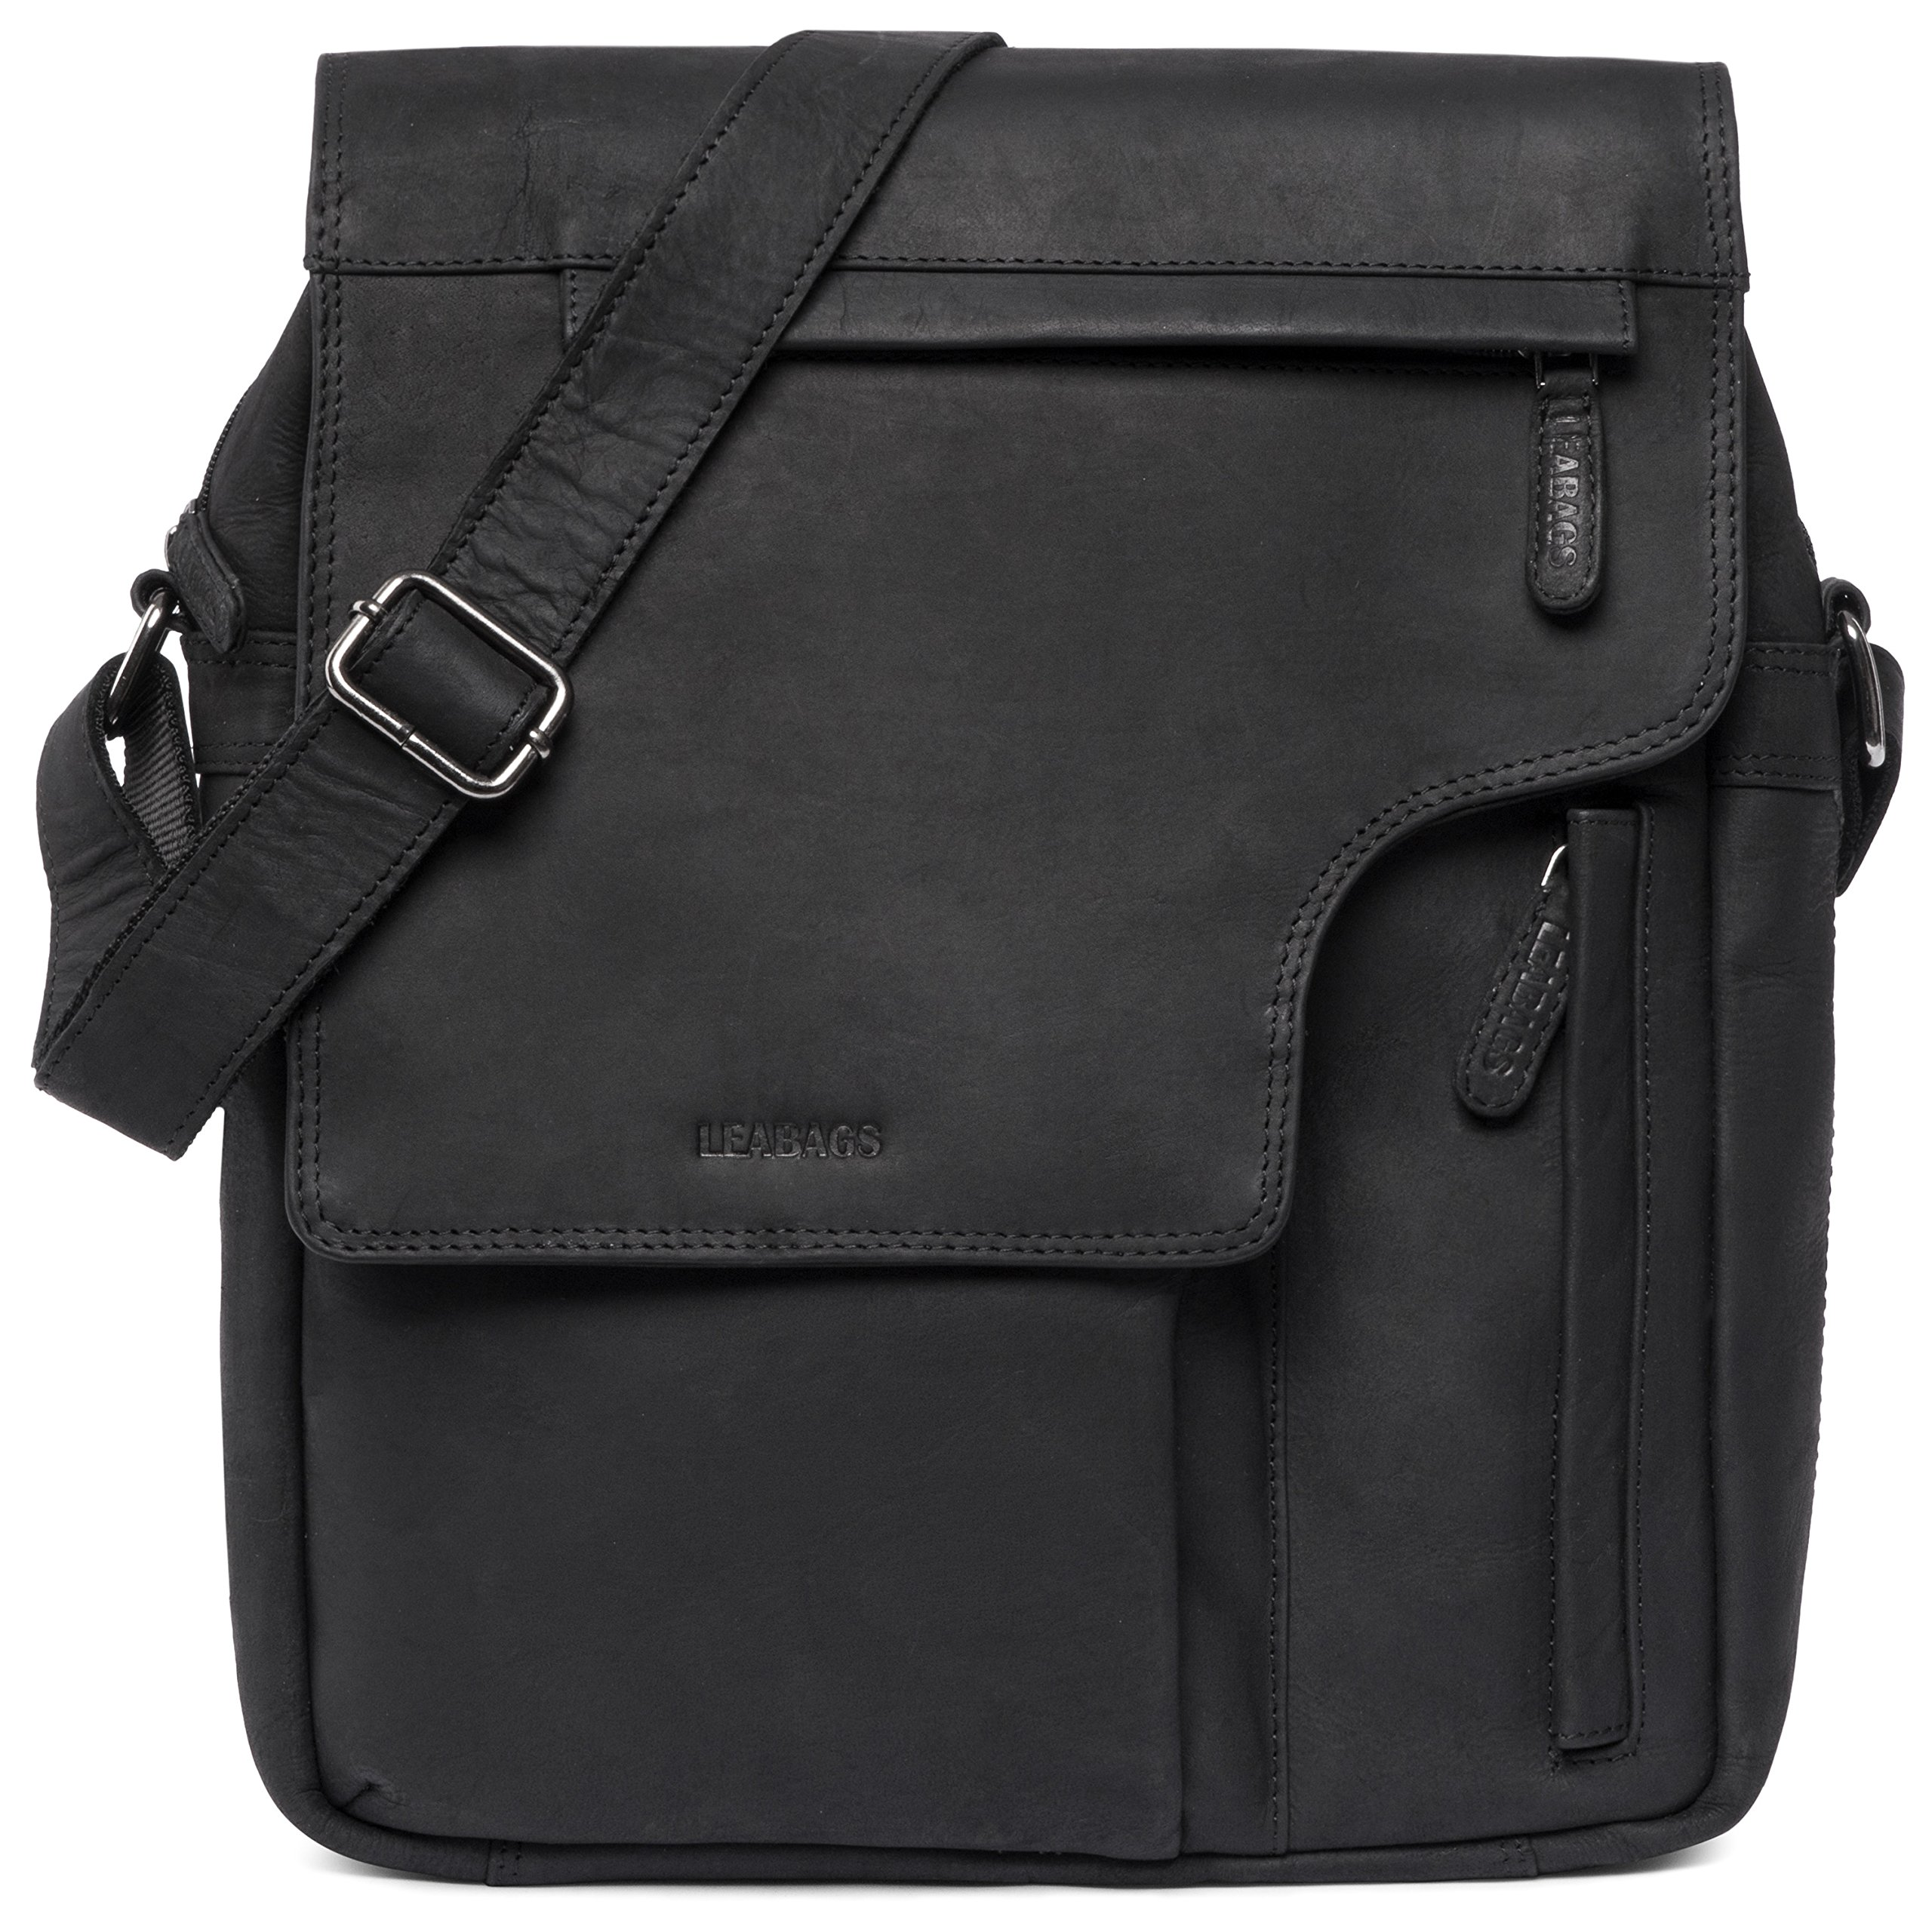 LEABAGS Amsterdam genuine buffalo leather city bag in vintage style - Black